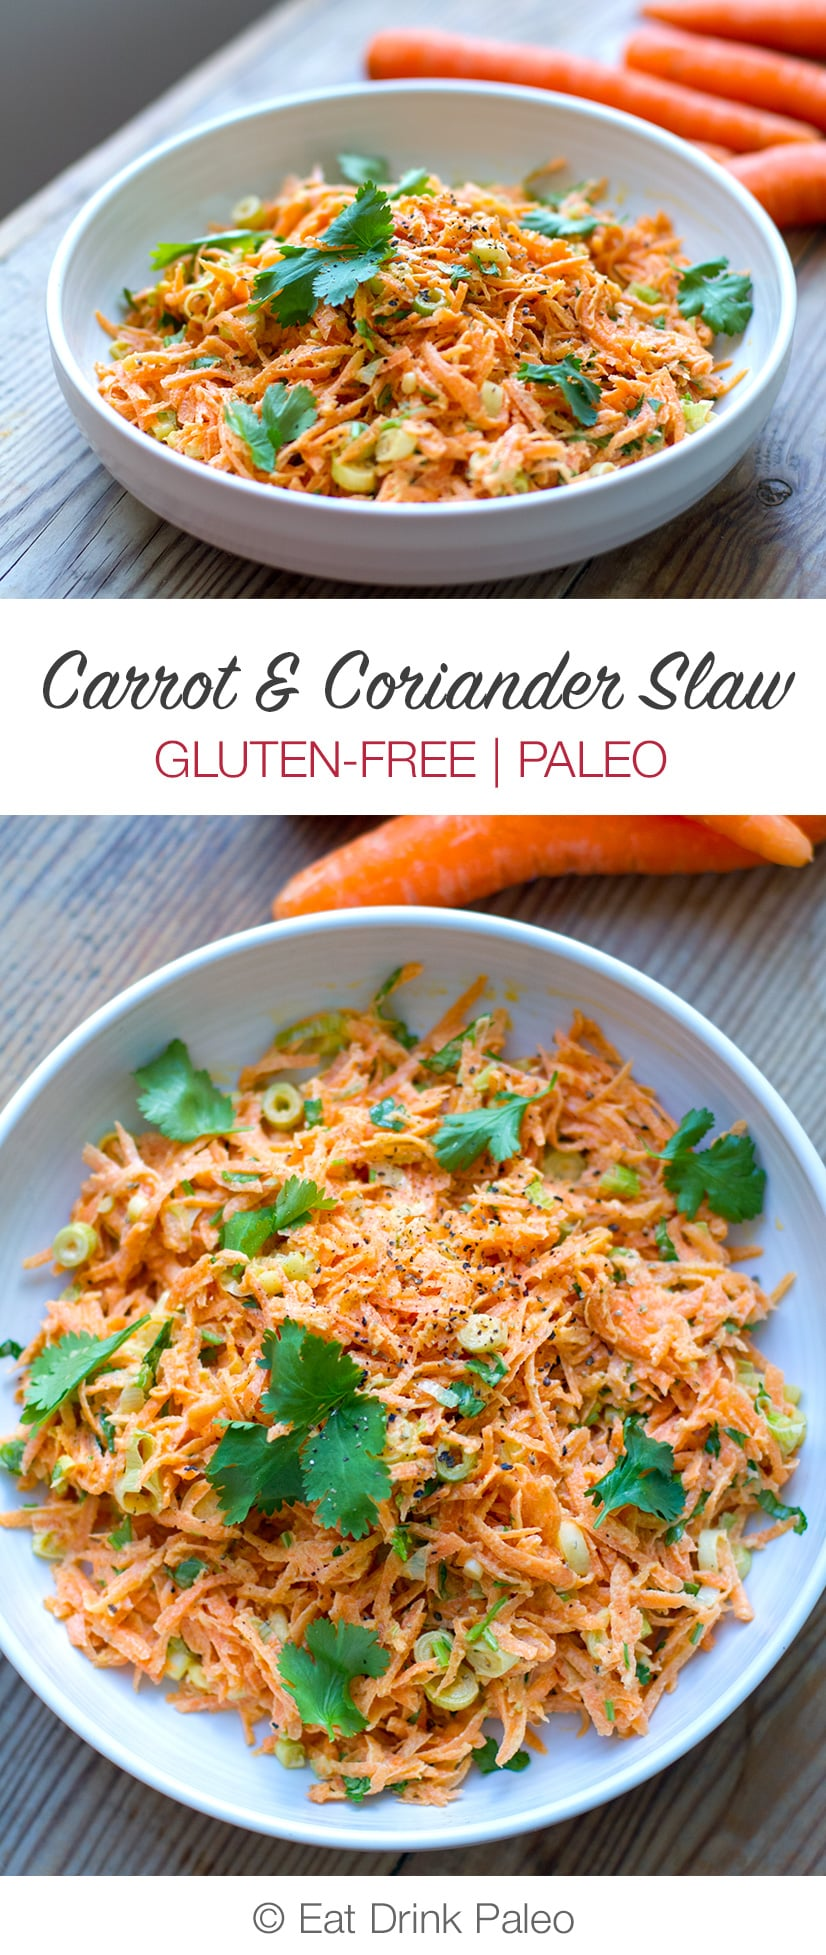 Carrot & Coriander Slaw Recipe